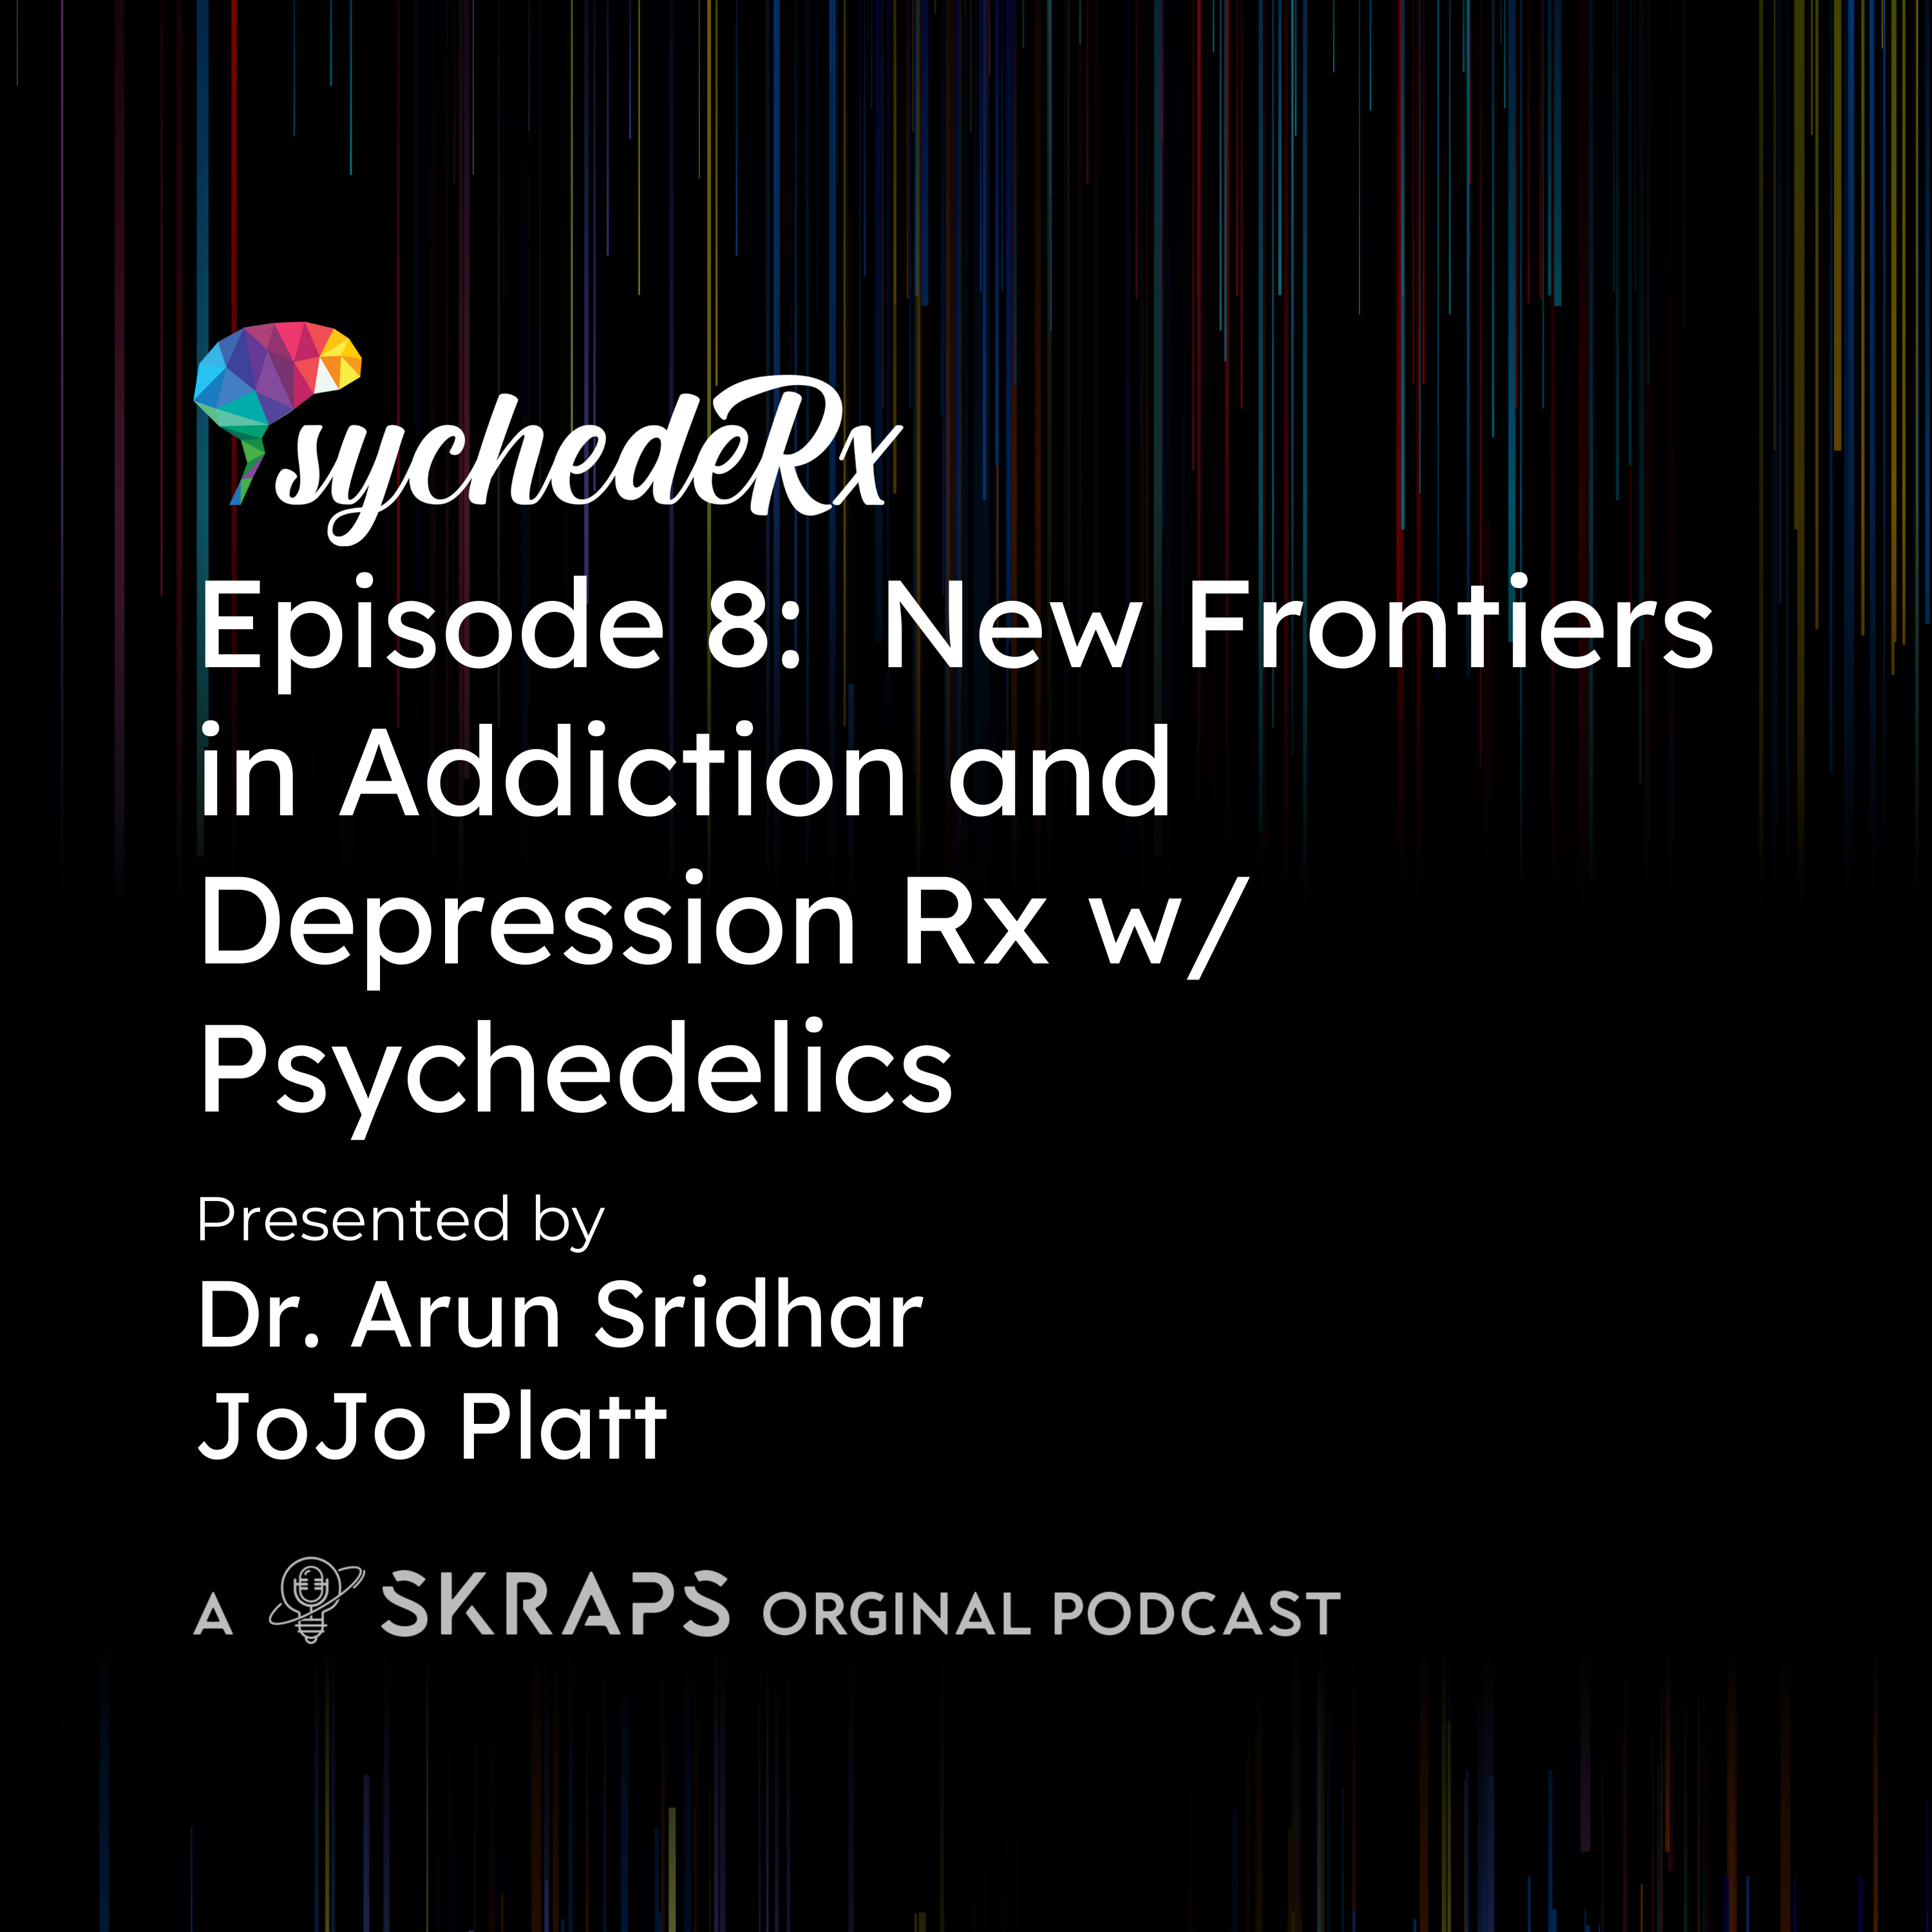 New Frontiers in Addiction and Depression Rx w/ psychedelics